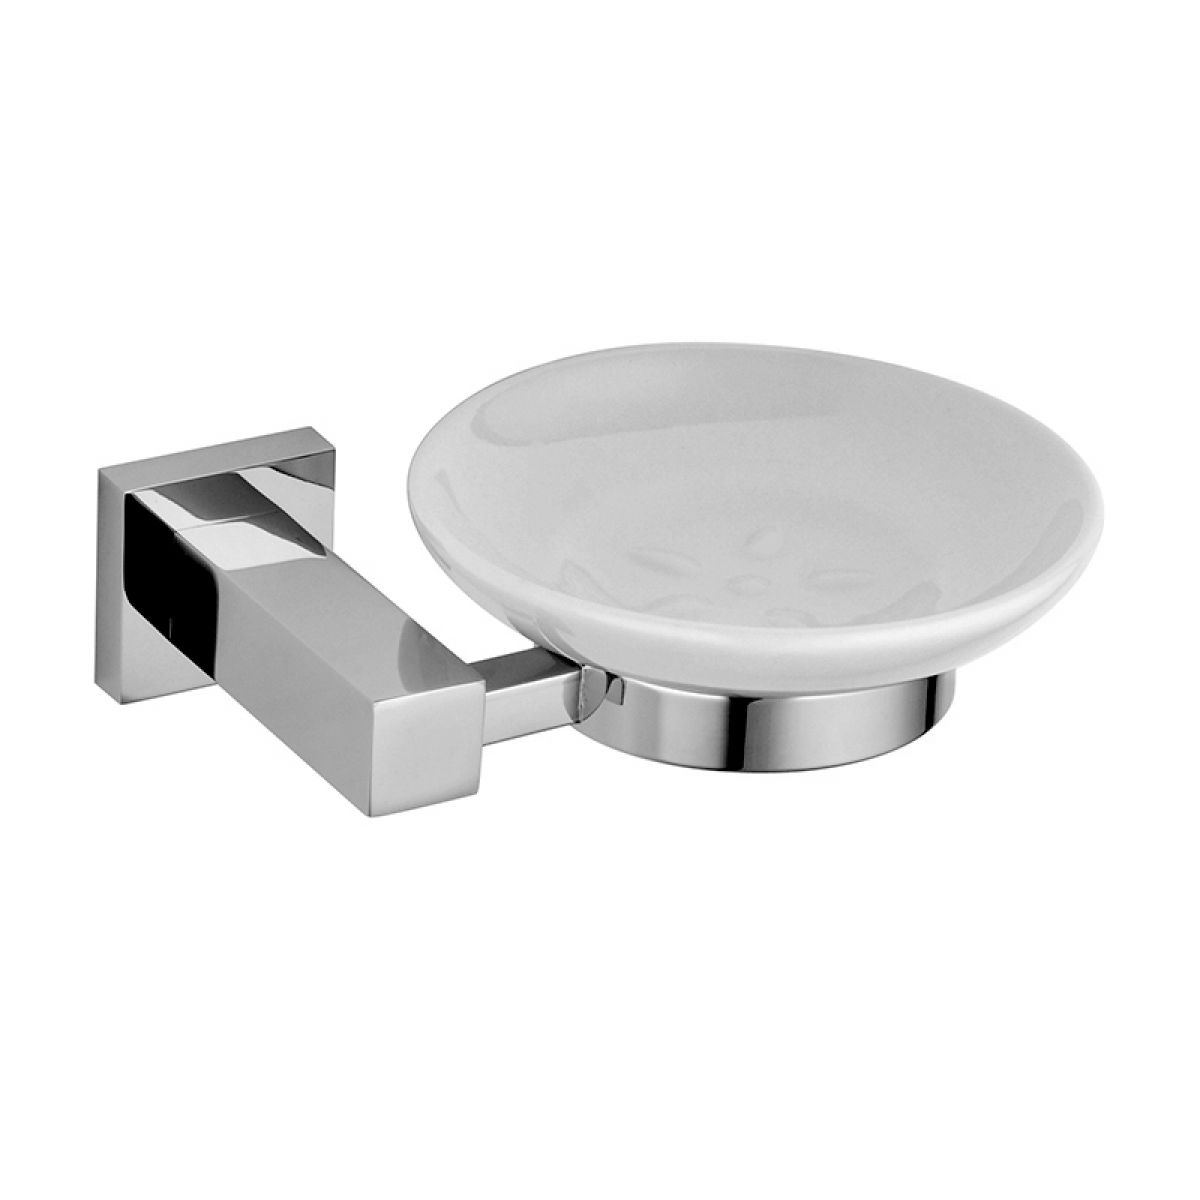 Abacus Line Soap Dish and Holder